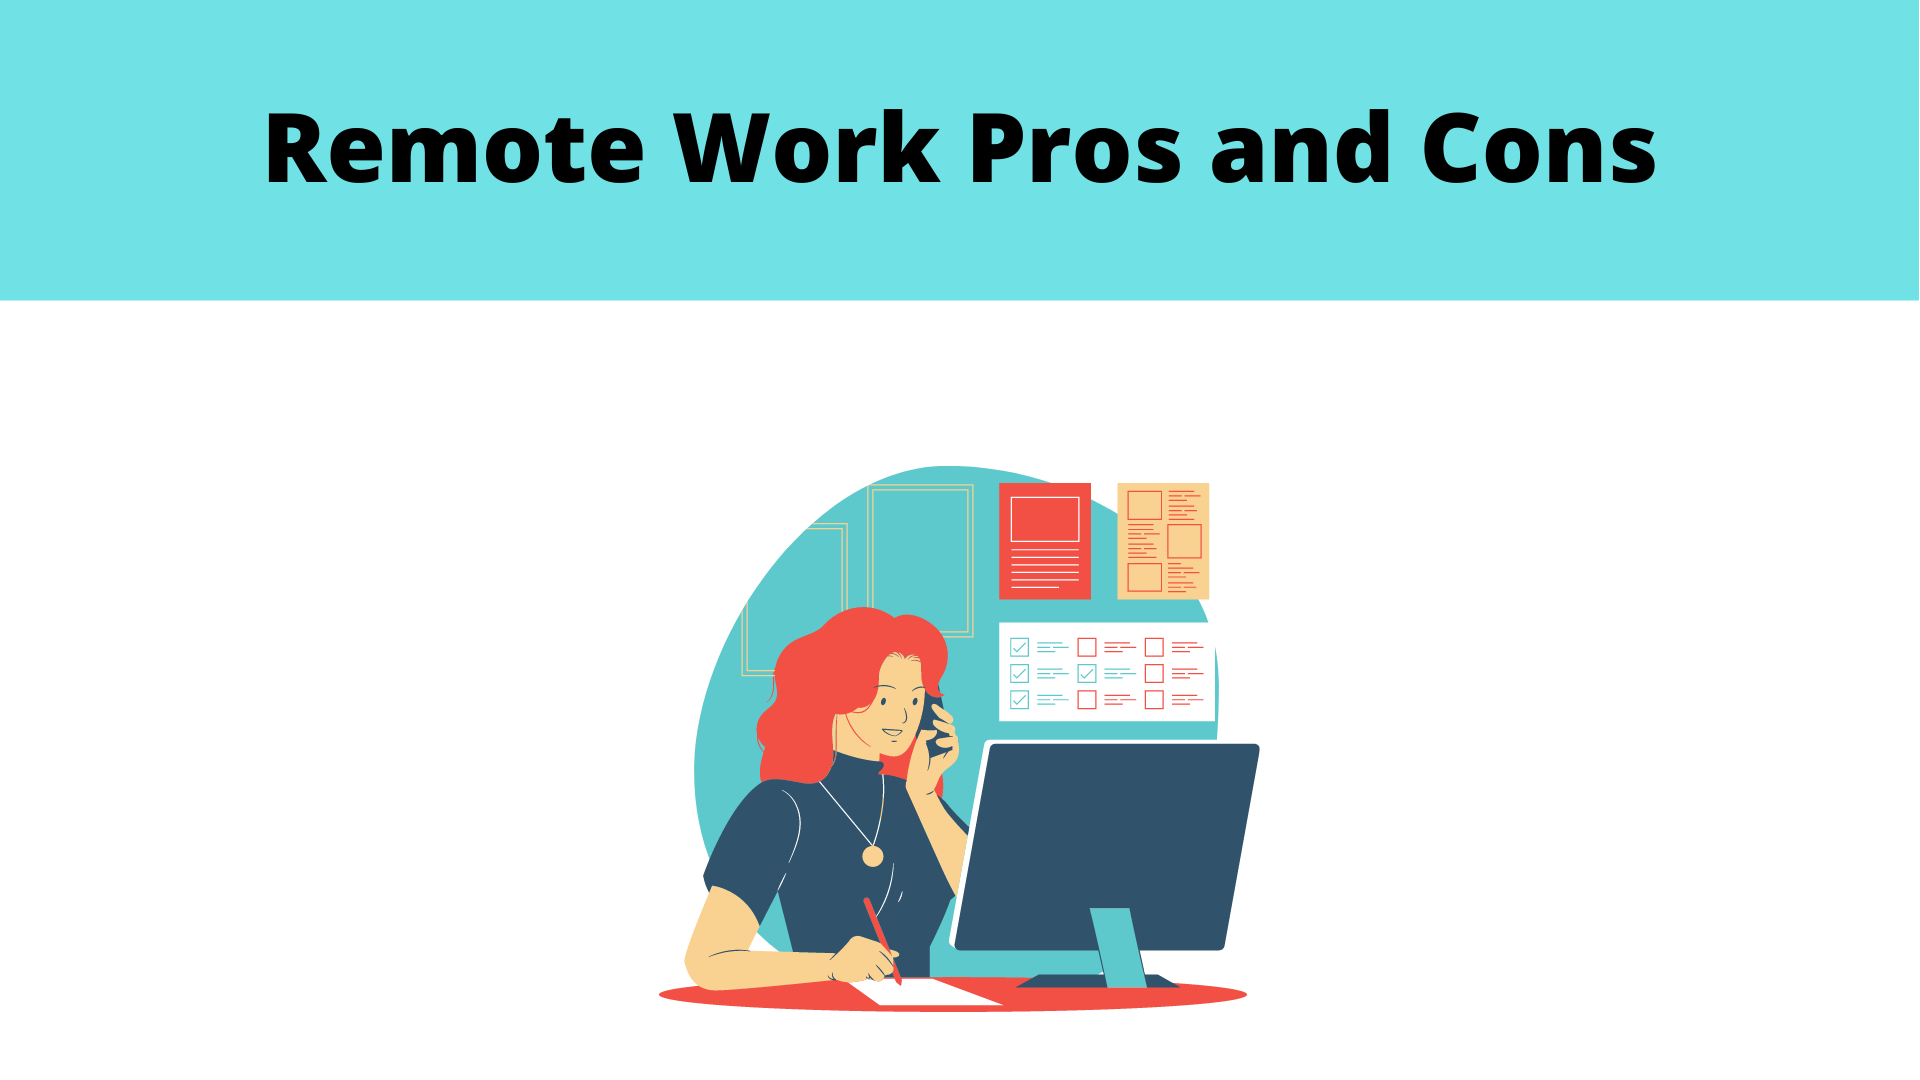 Remote work pros and cons